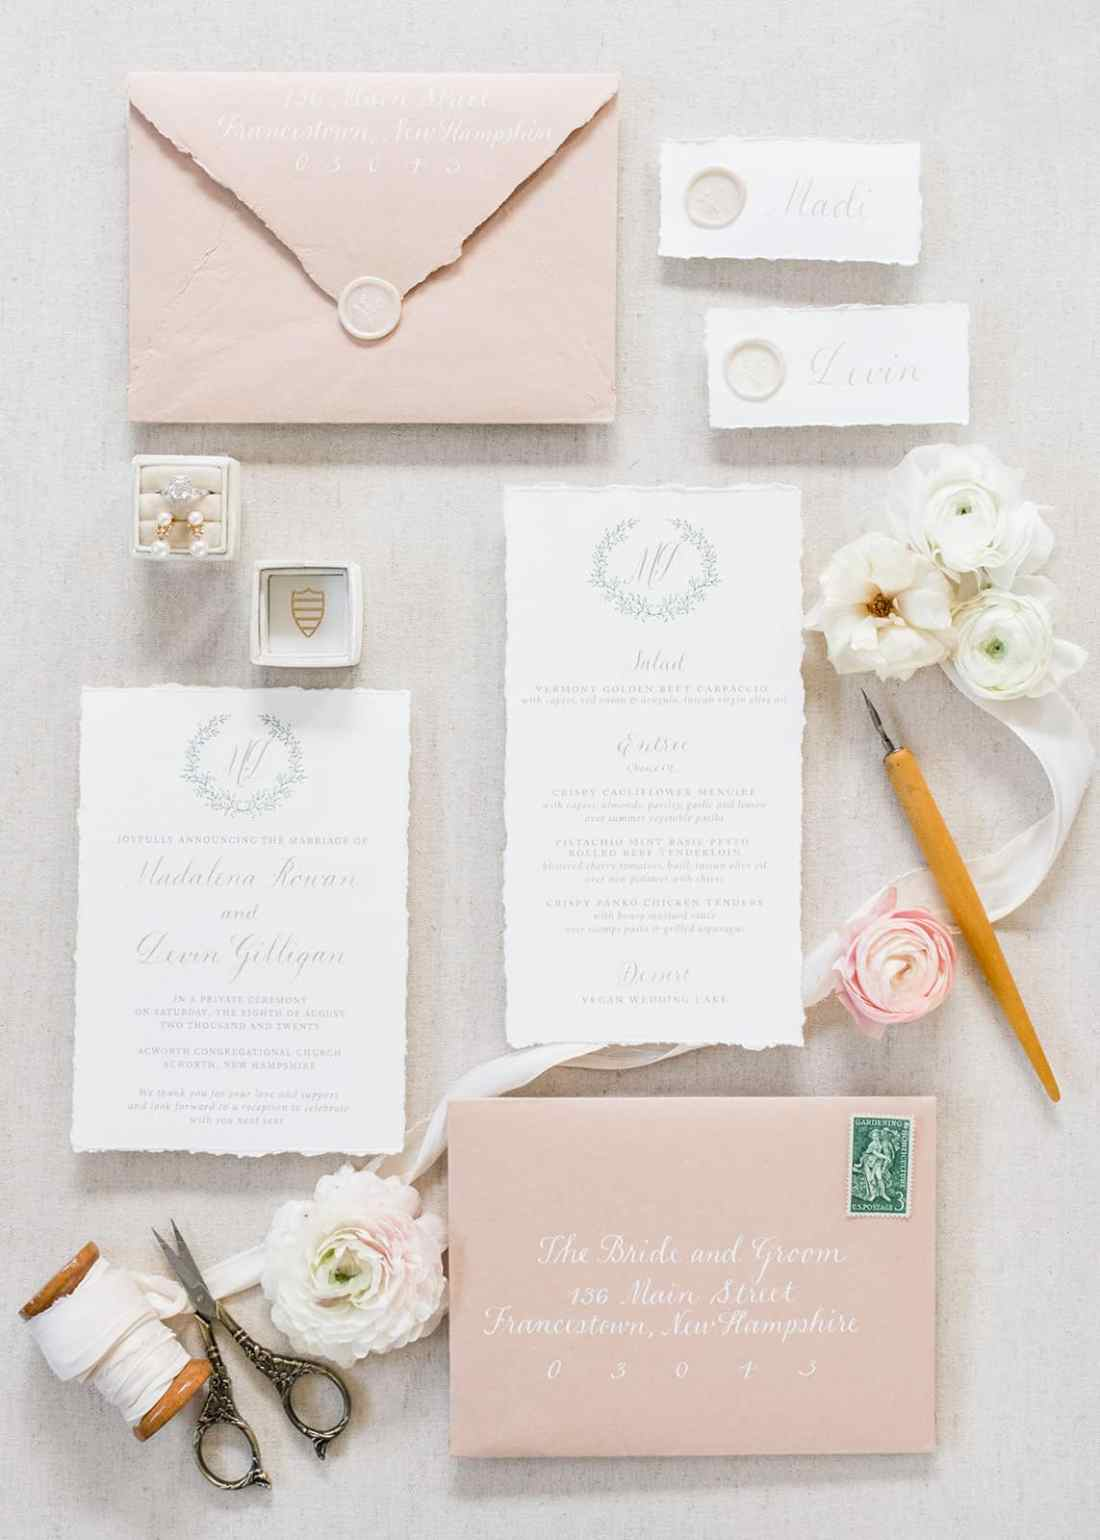 Sharing my wedding planning process, as well as, detail shots I loved from our day including my bouquet, invitations, shoes, rings, & more!